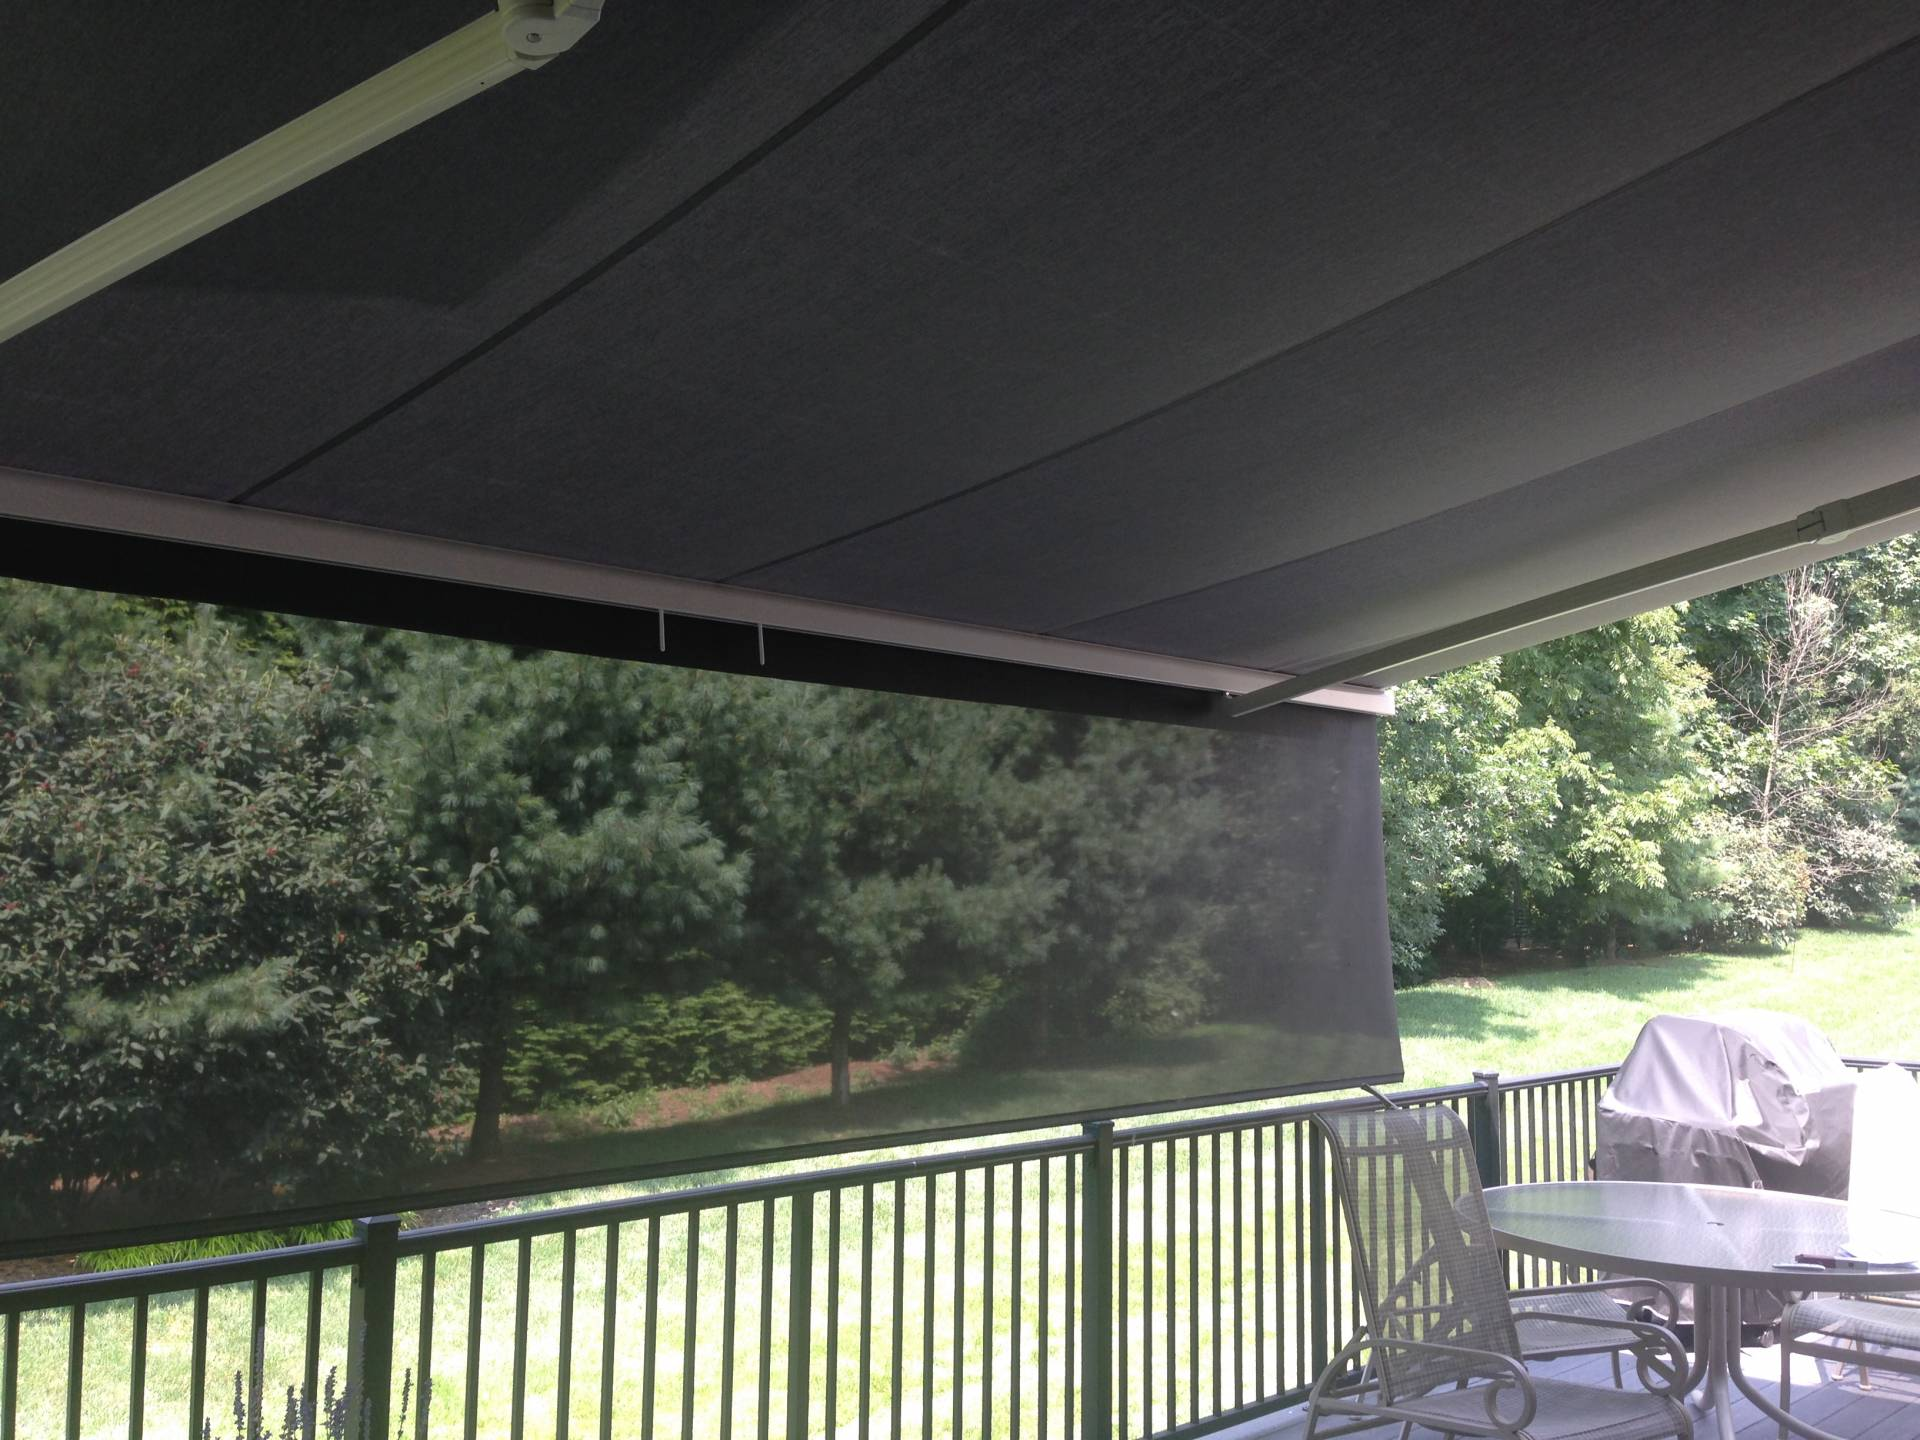 Wall Mounted Awning Kreider S Canvas Service Inc